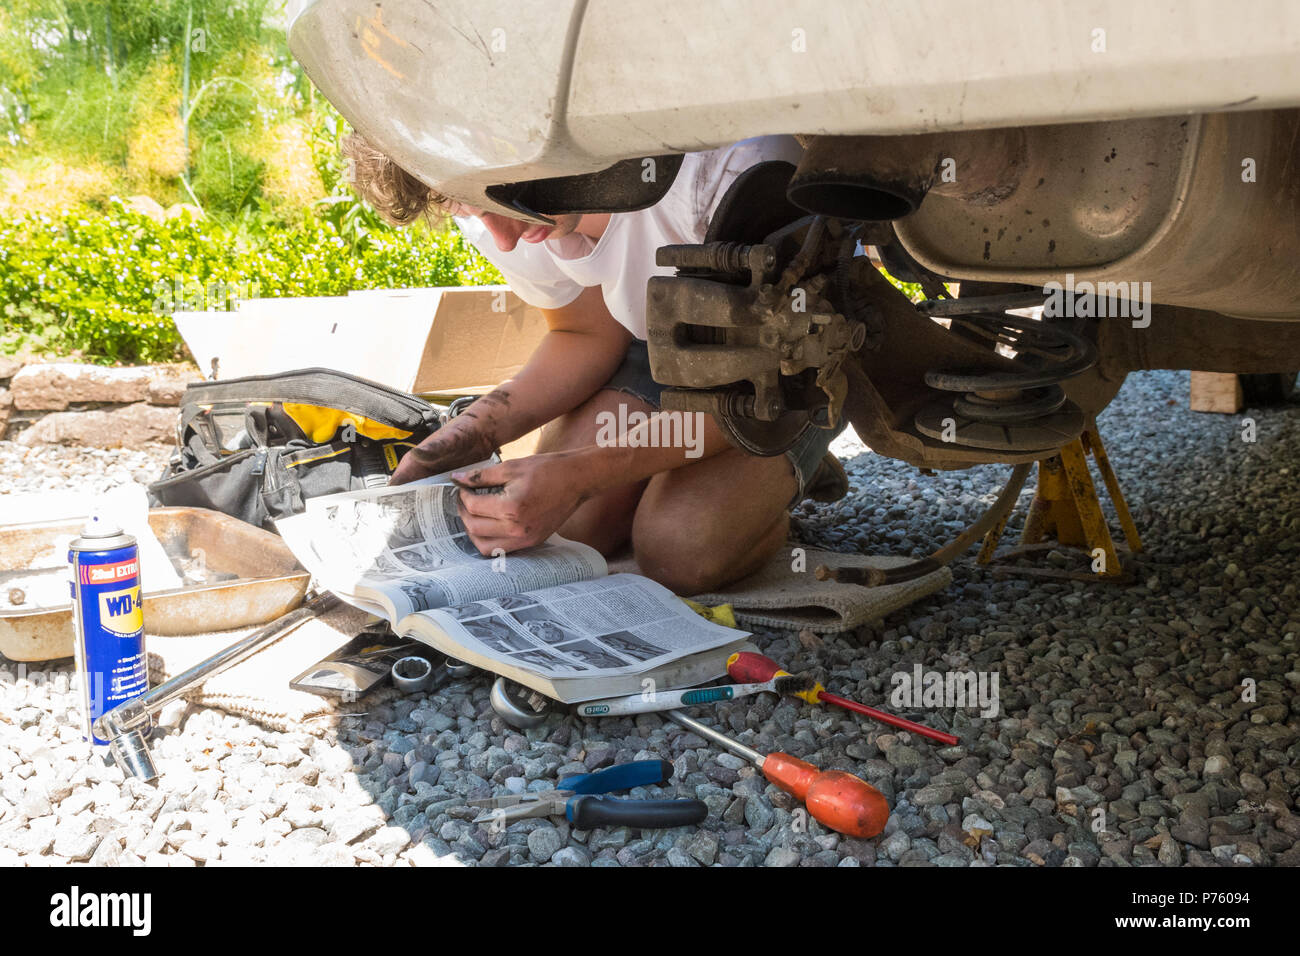 DIY car maintenance and repairs - young man reading Haynes manual as he changes the brake pads, brake disc and brake caliper for the first time - Stock Image